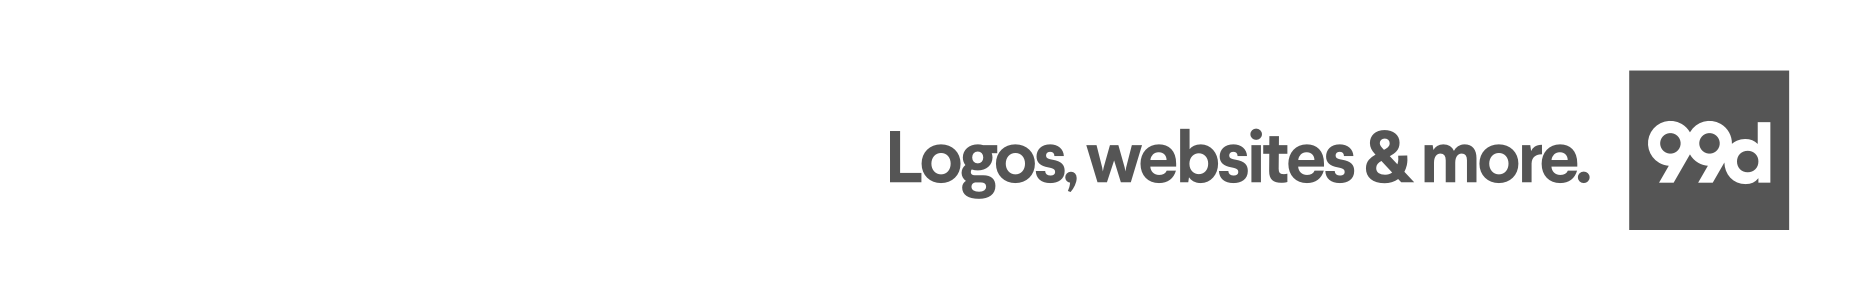 99designs logomark tagline usage